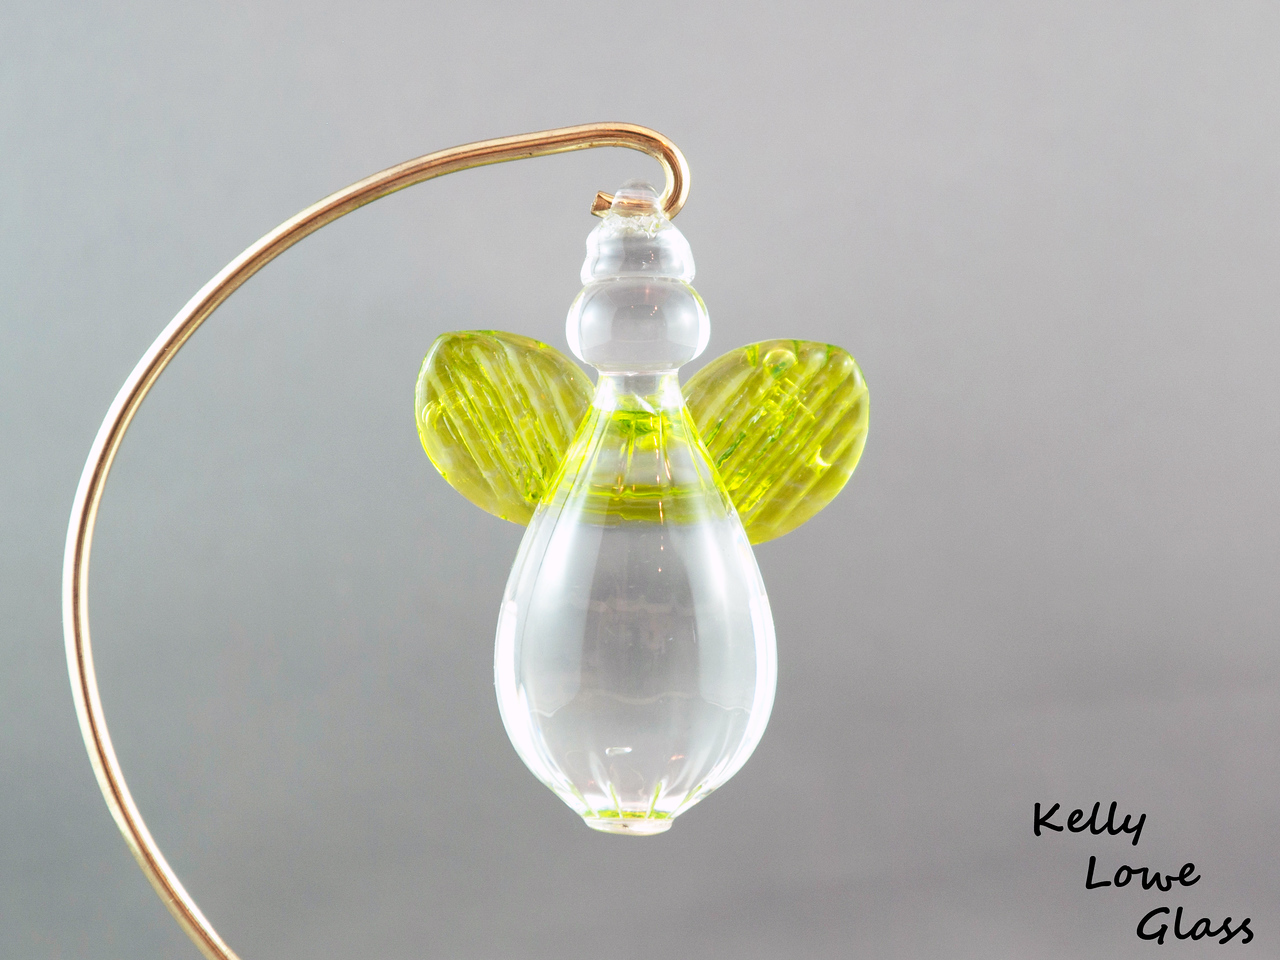 """Hanging Glass Angel - Lime Green  Height: Approx 8cm (3.15"""") Across the Wings: Approx 5.5cm (2.17"""") Depth: Approx 3cm (1.19"""") Weight: Approx 85g (0.19 lbs)  *Brass hanger in pictures is not included  Please note: as each piece begins its life as molten glass and is blown/sculpted by hand into the final product, individual pieces might have slight variations in size and/or appearance. Please rest assured however that the standard of quality is quite high, and no substandard pieces will be sold."""